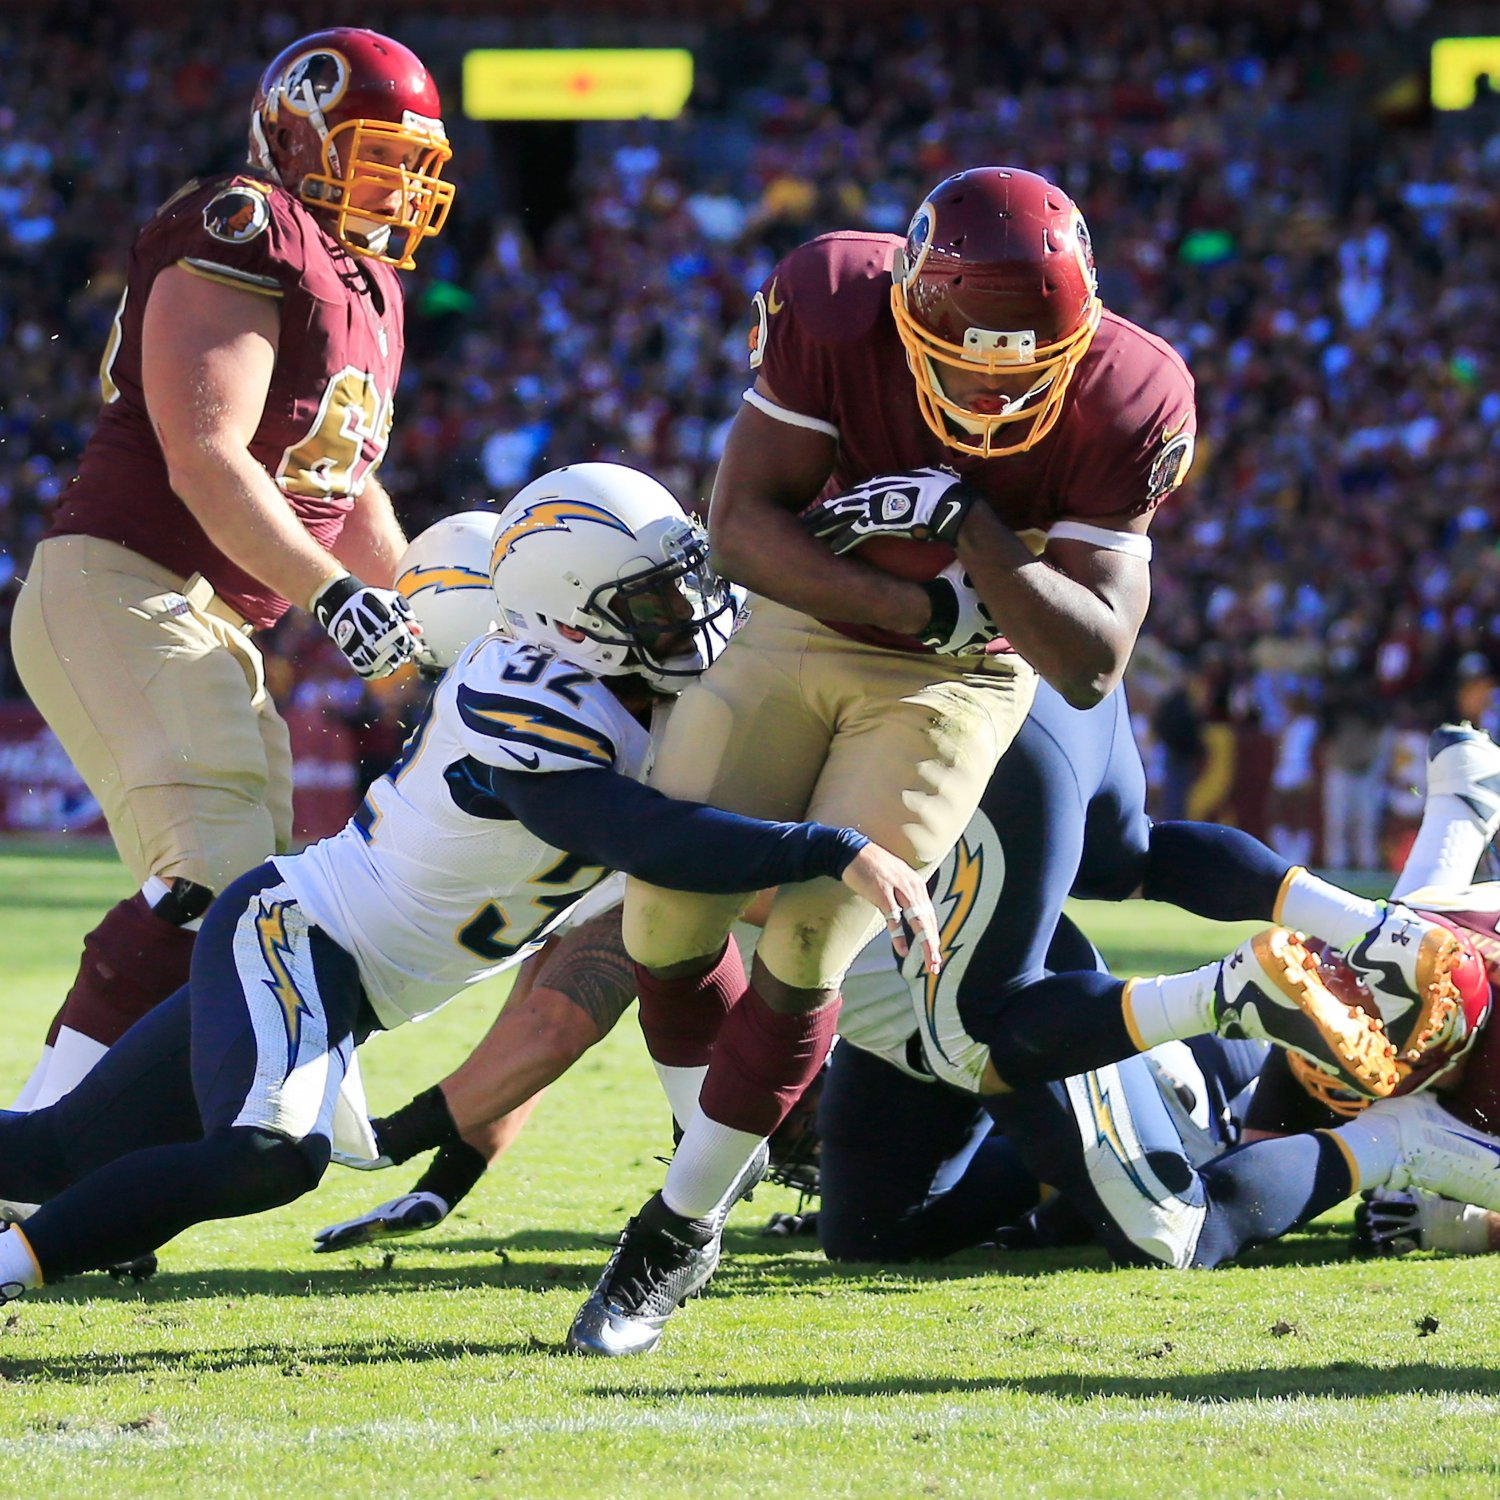 San Diego Chargers Final Score: Redskins Vs. Chargers: Final Grades And Analysis For